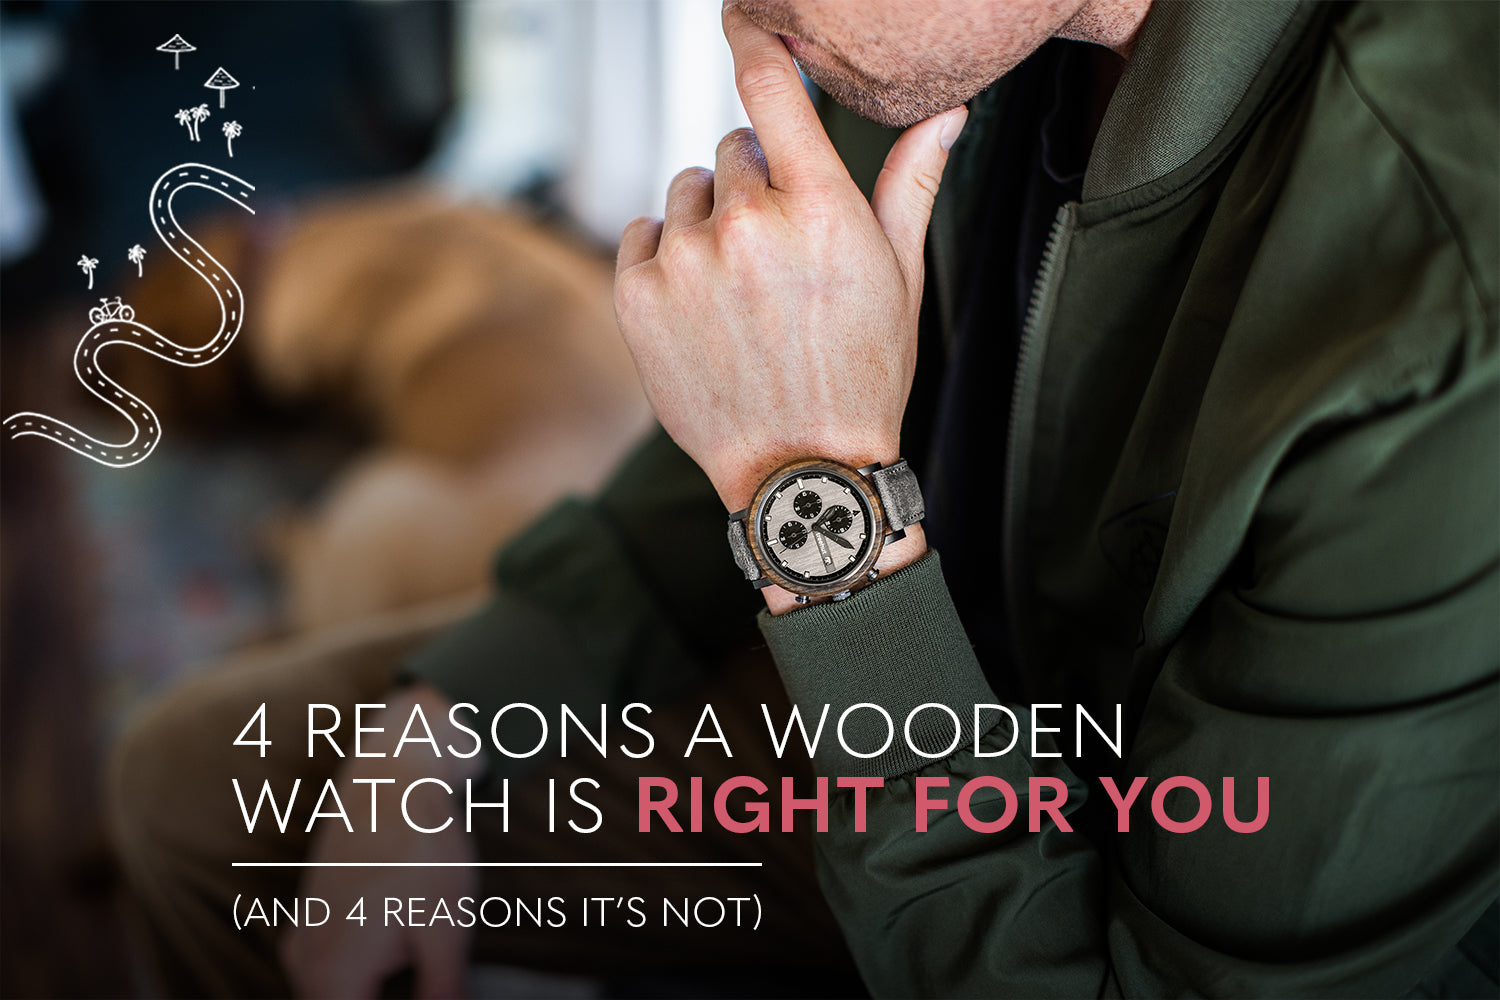 4 REASONS A WOODEN WATCH IS RIGHT FOR YOU